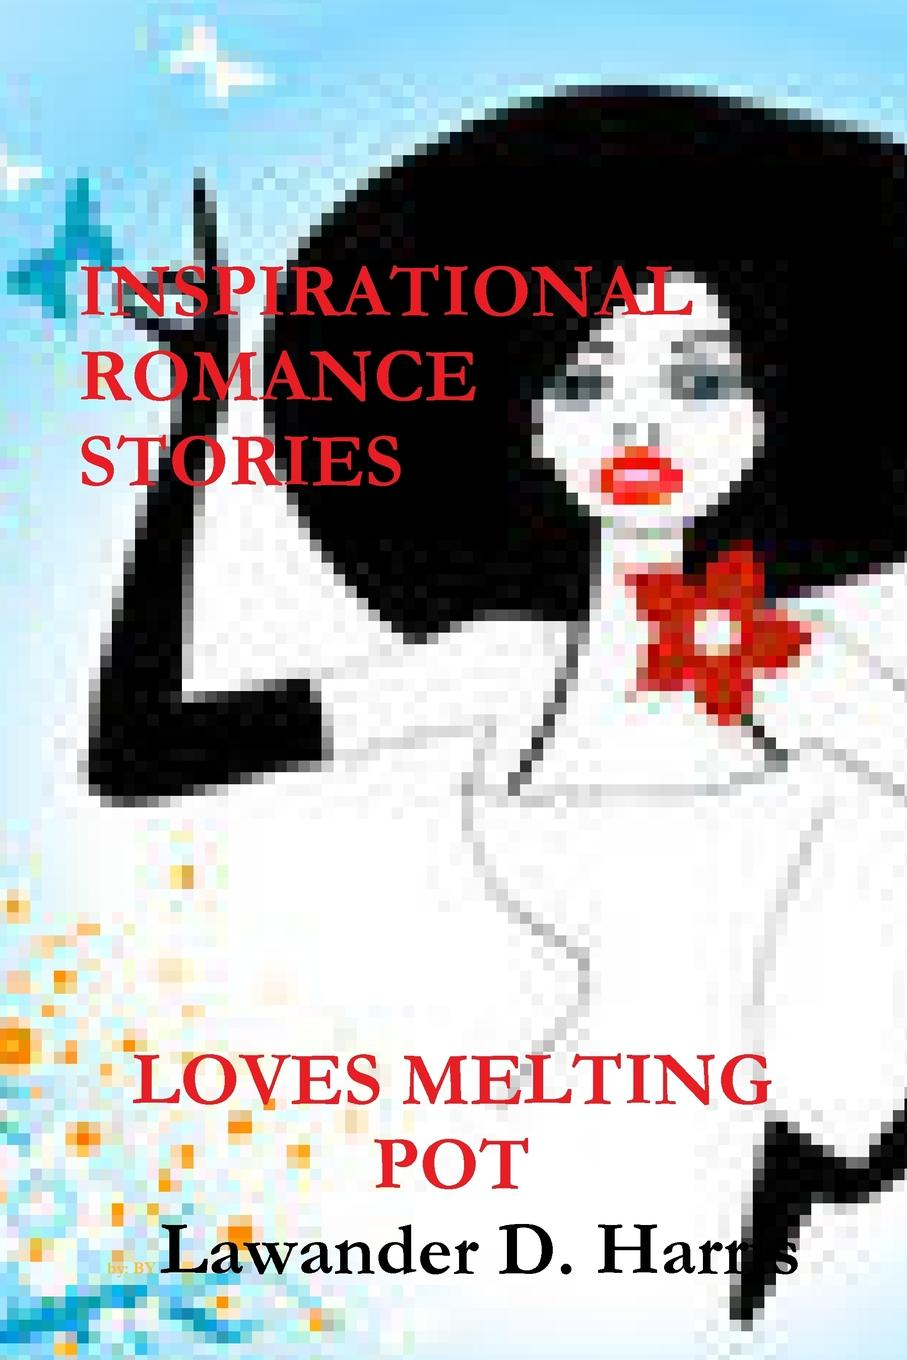 Фото - Lawander Harris LOVES MELTING POT - Inspirational Romance Stories agent based snort in distributed environment